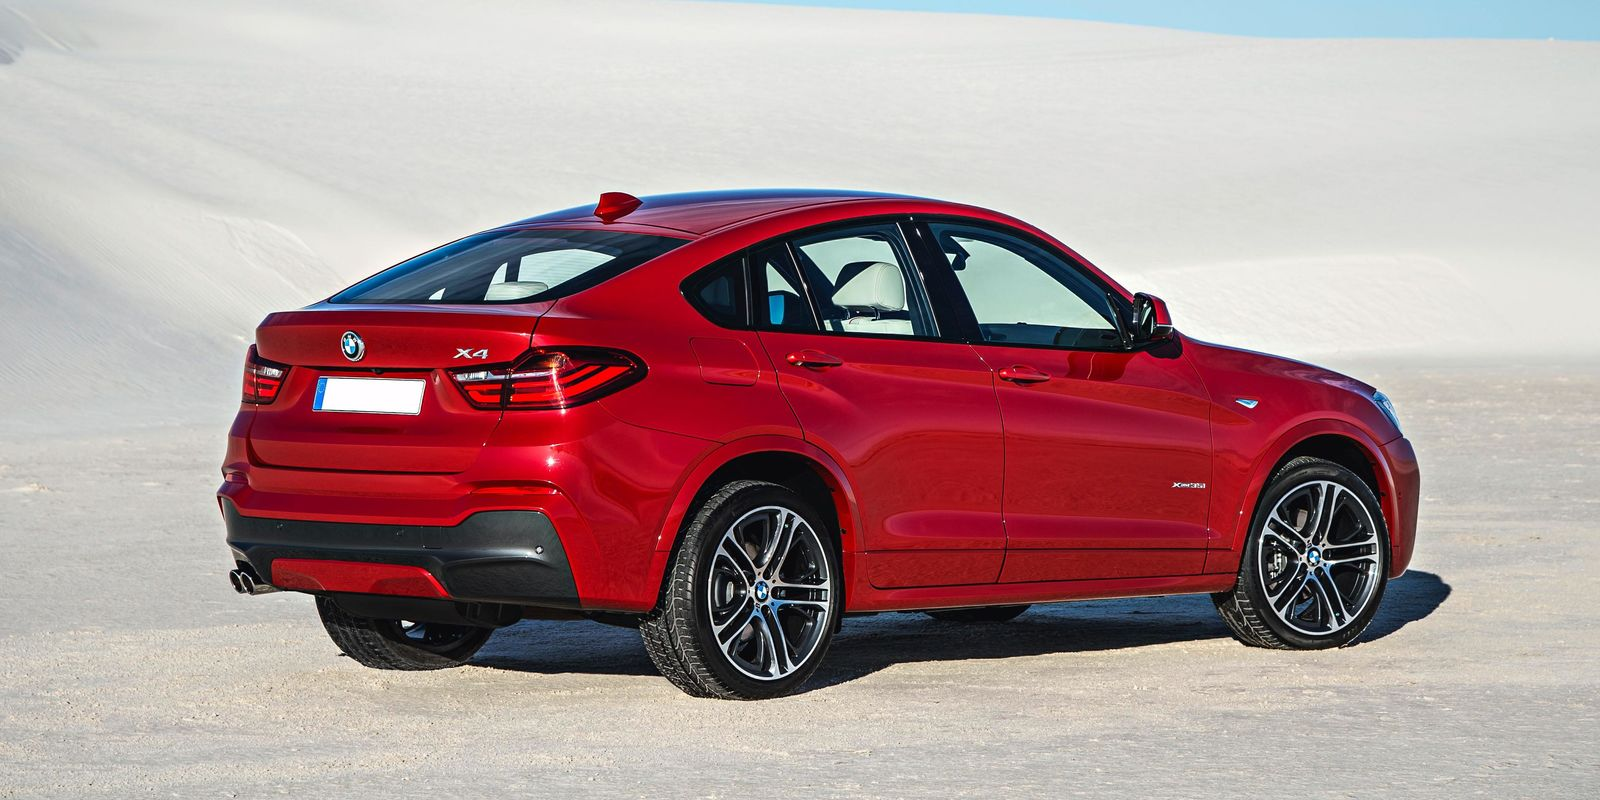 bmw x4 review carwow. Black Bedroom Furniture Sets. Home Design Ideas